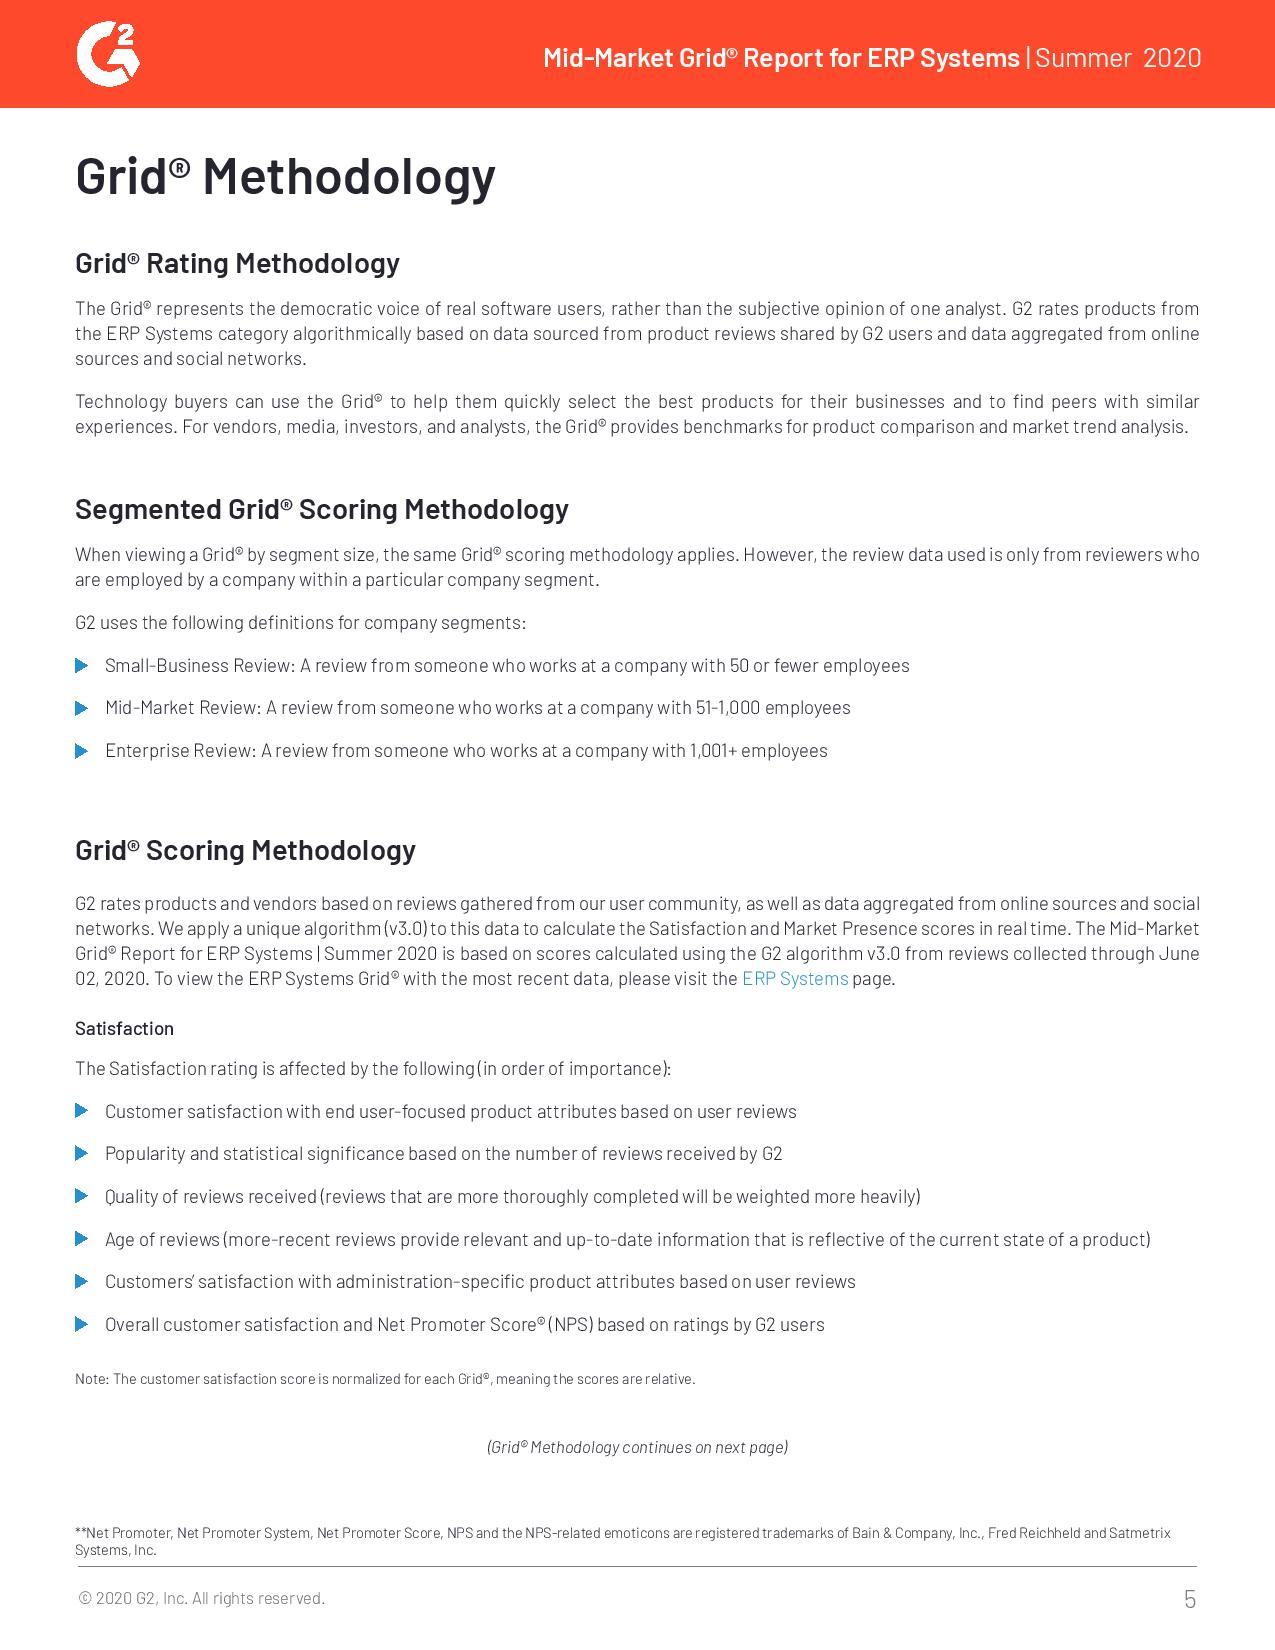 Mid-Market ERP Solutions: Which One Is Best for Your Business?, page 3